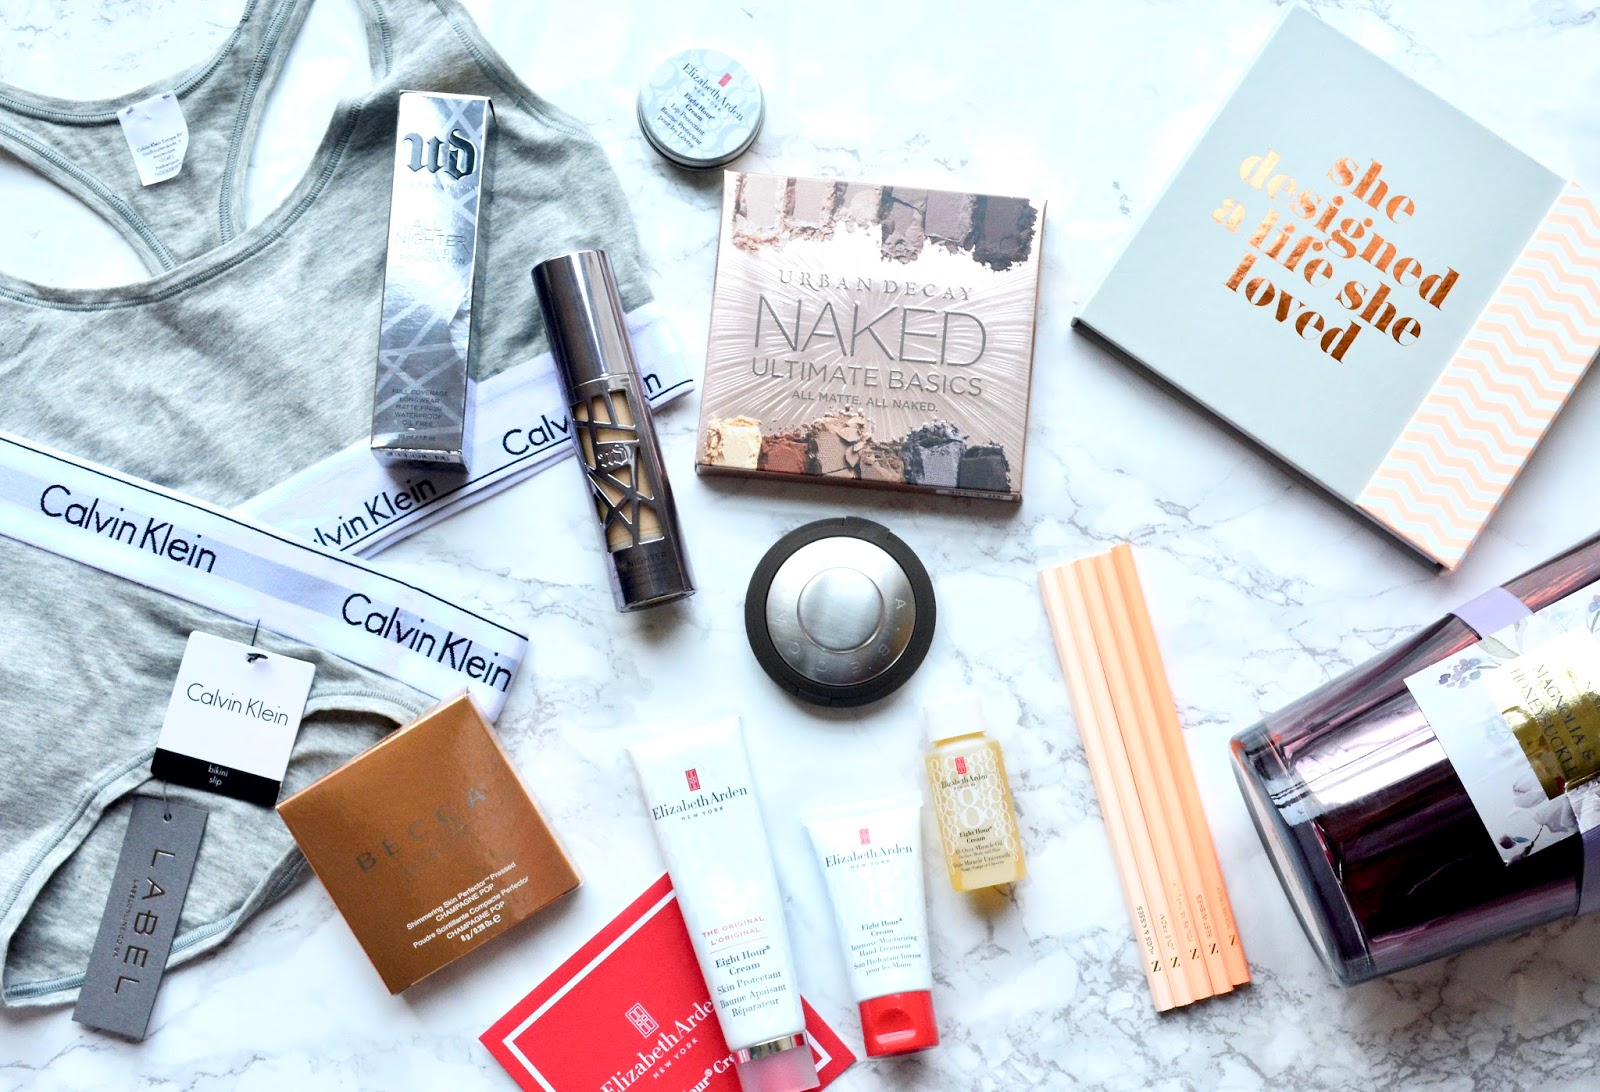 Beauty, Makeup, Christmas, What I got For Christmas, Elizabeth Arden, Urban Decay,Urban Decay All Nighter Foundation, Calvin Klein Underwear, Urban Decay Ultimate Basics, Zoella Lifestyle, Zoella Lifestyle Planner, Becca Hill Champagne Pop, Highlighter,